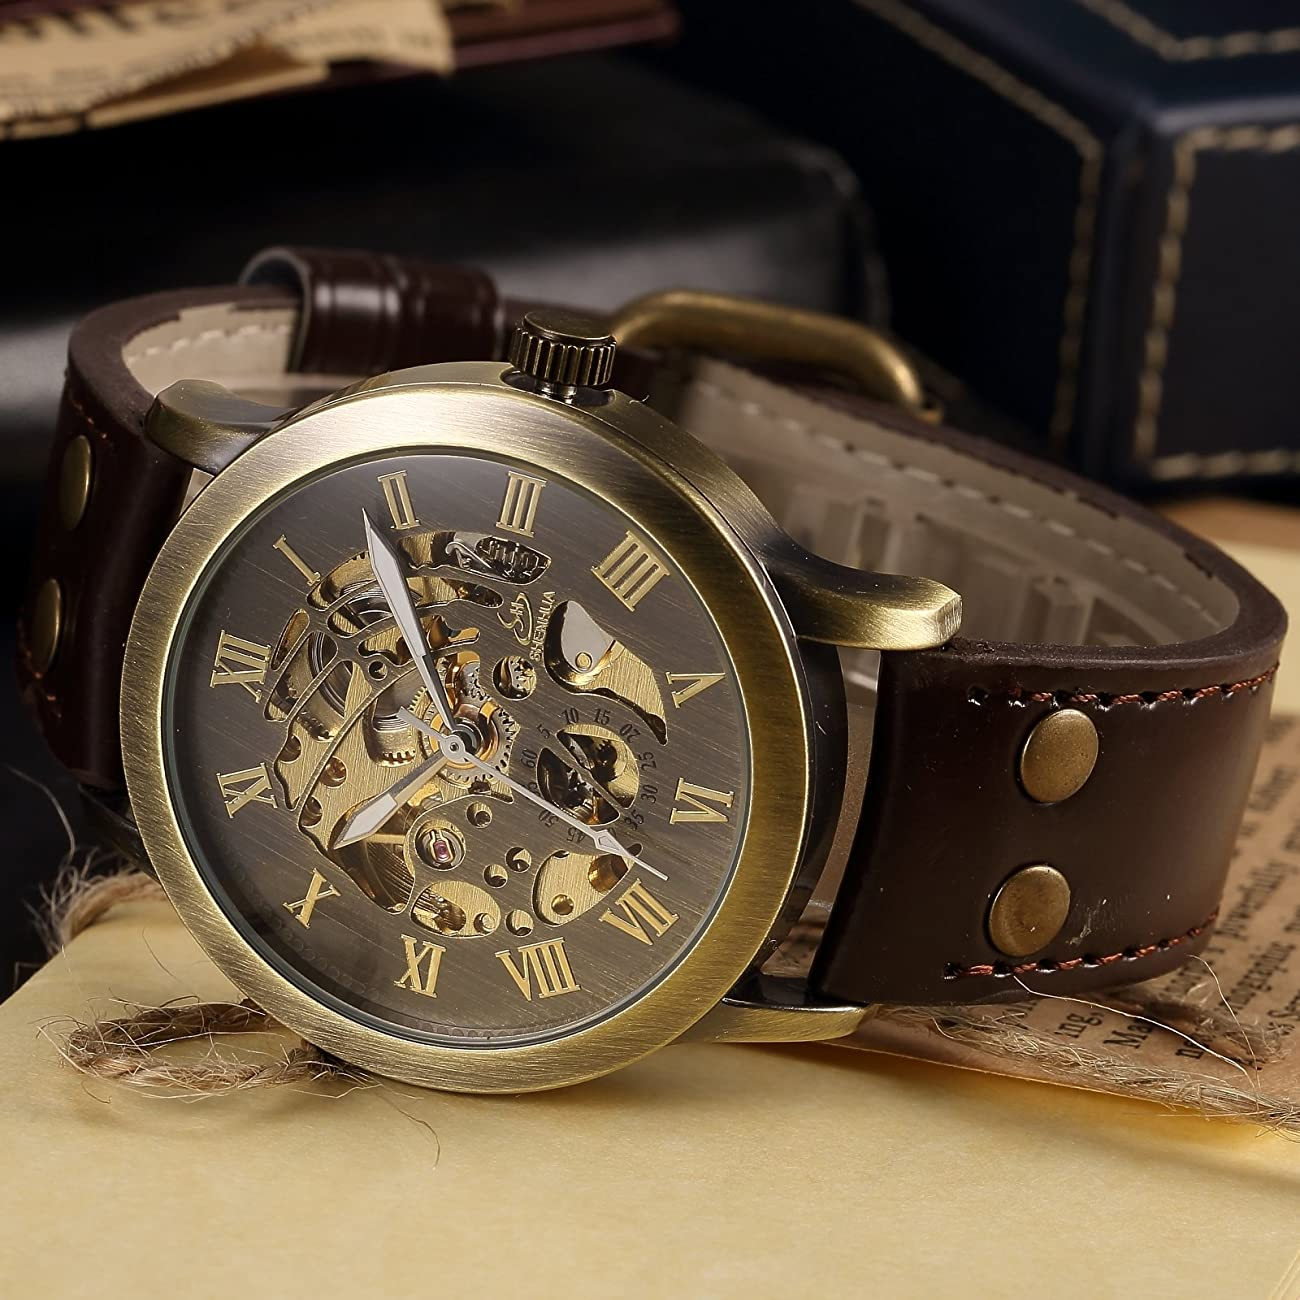 AMPM24 Men's Steampunk Bronze Skeleton Self-Winding Auto Mechanical Leather Wrist Watch PMW198 4